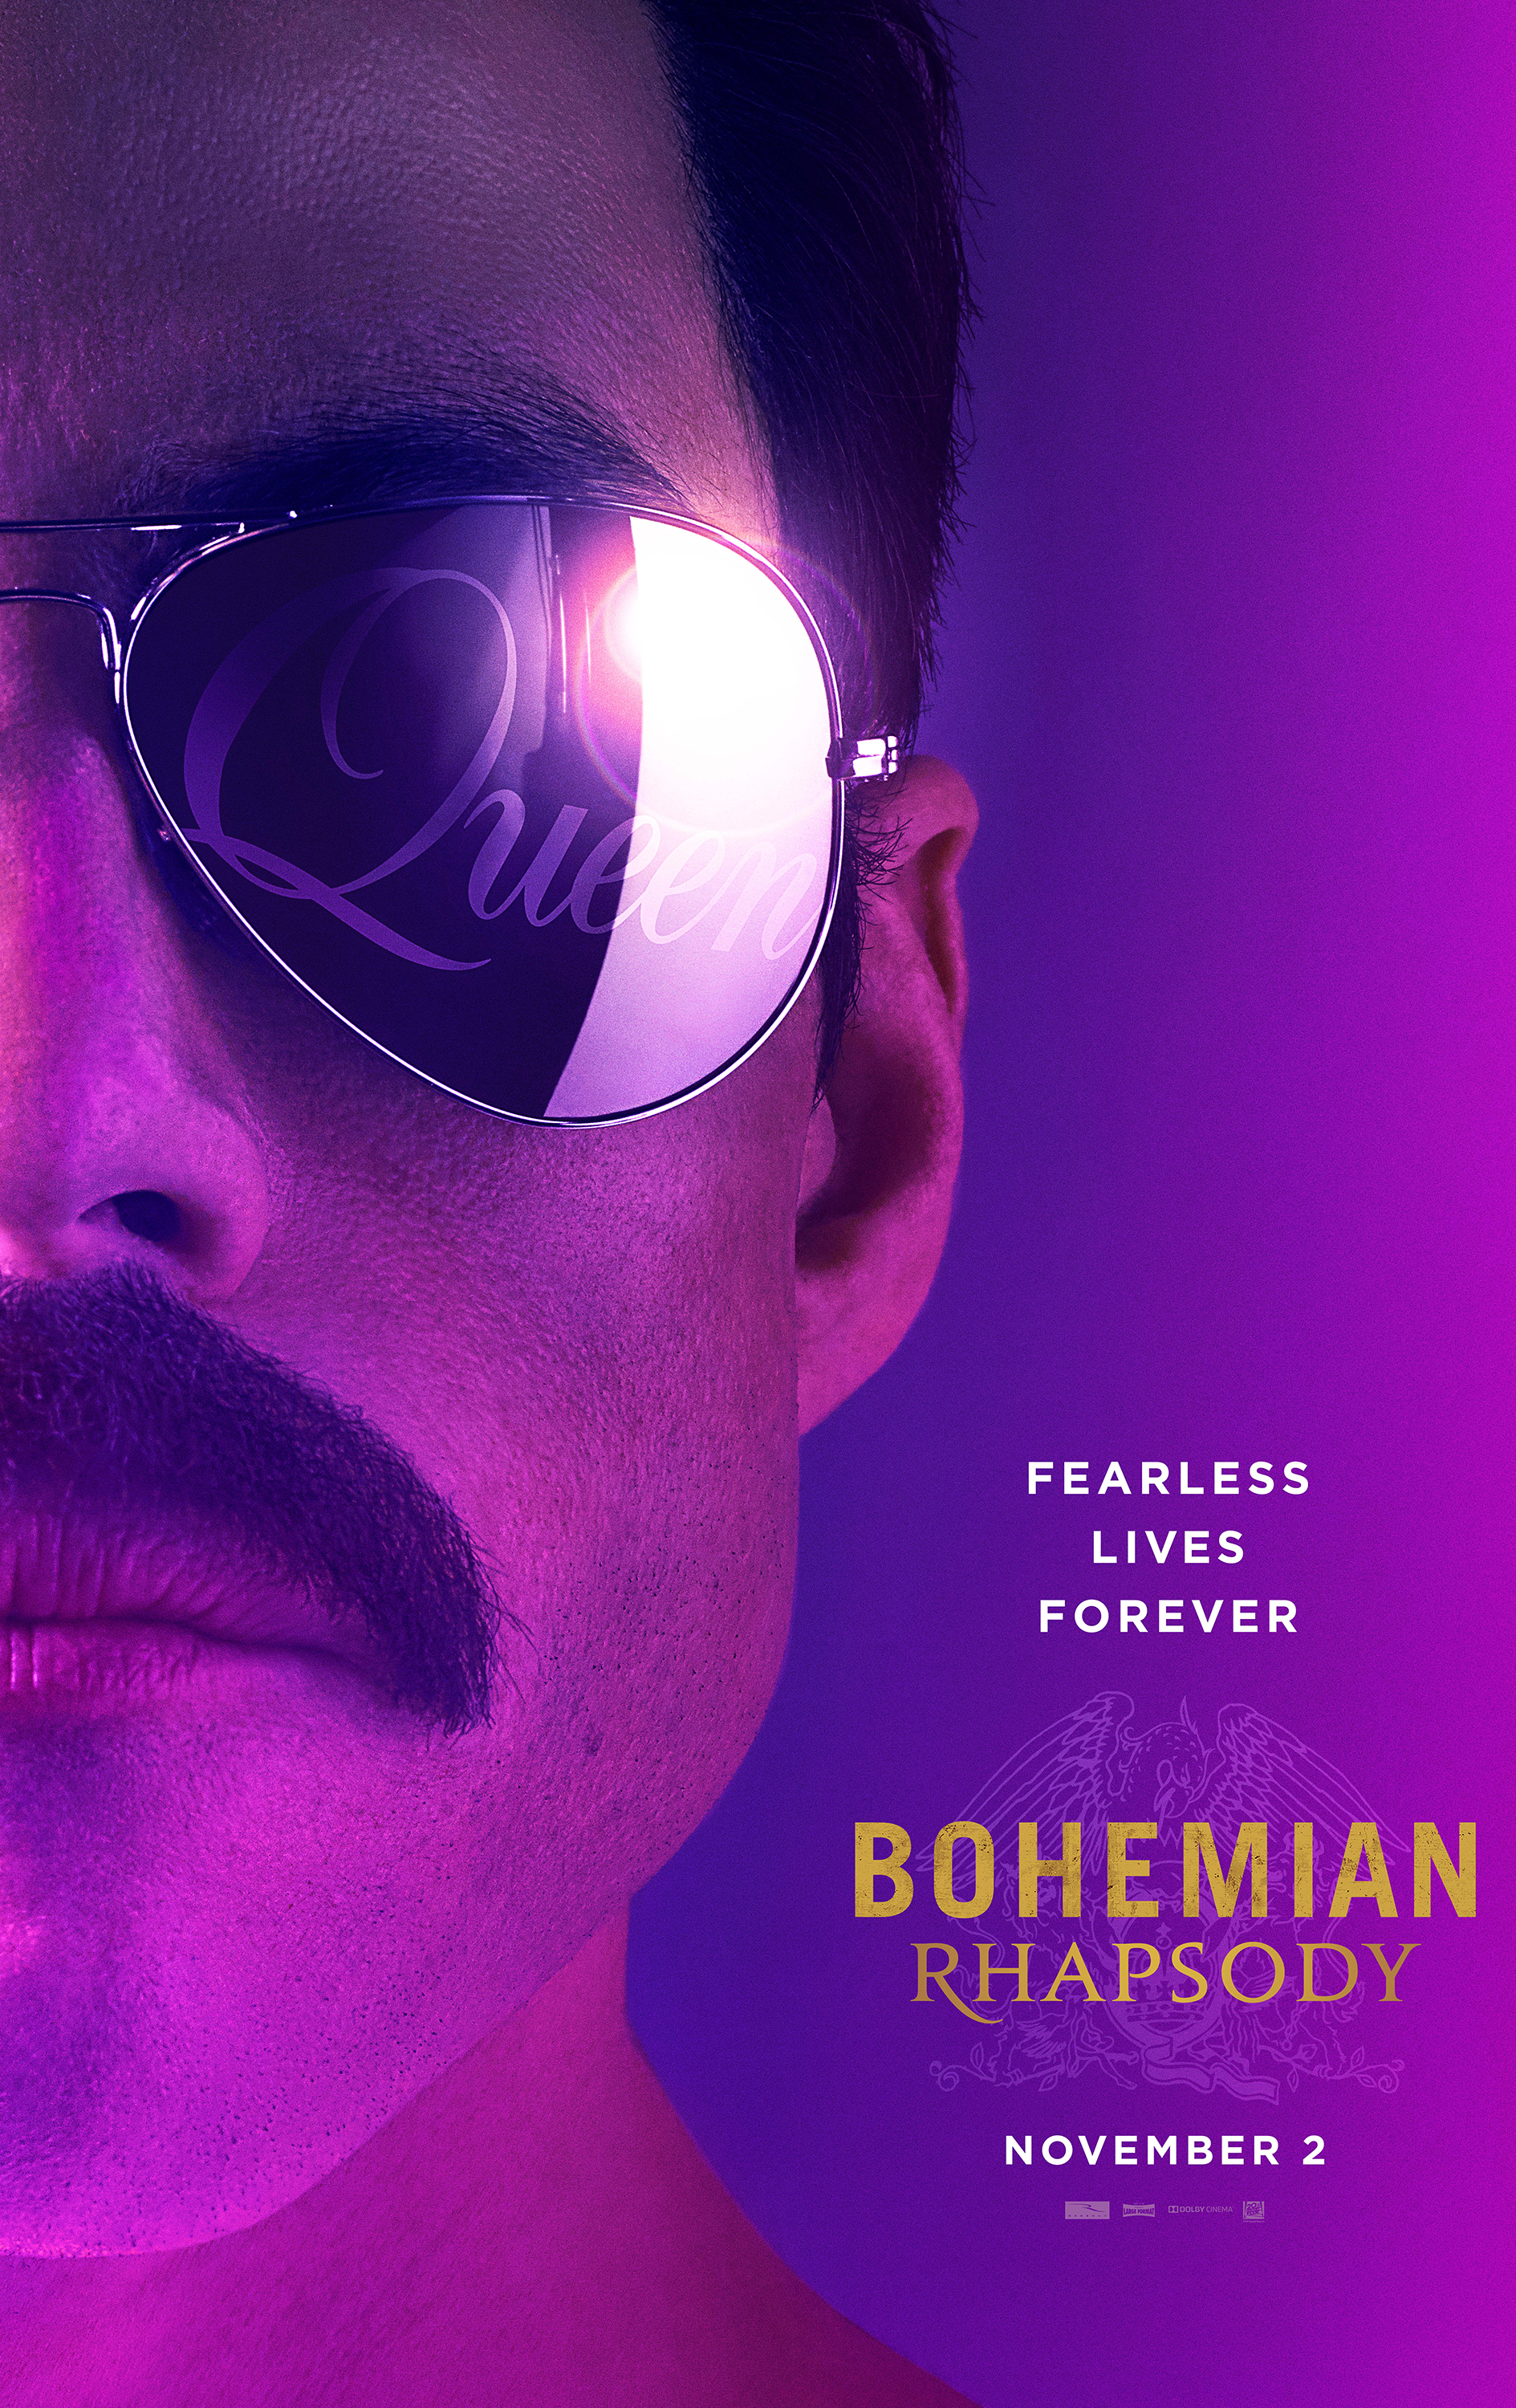 Bohemian Rhapsody: Queen Biopic